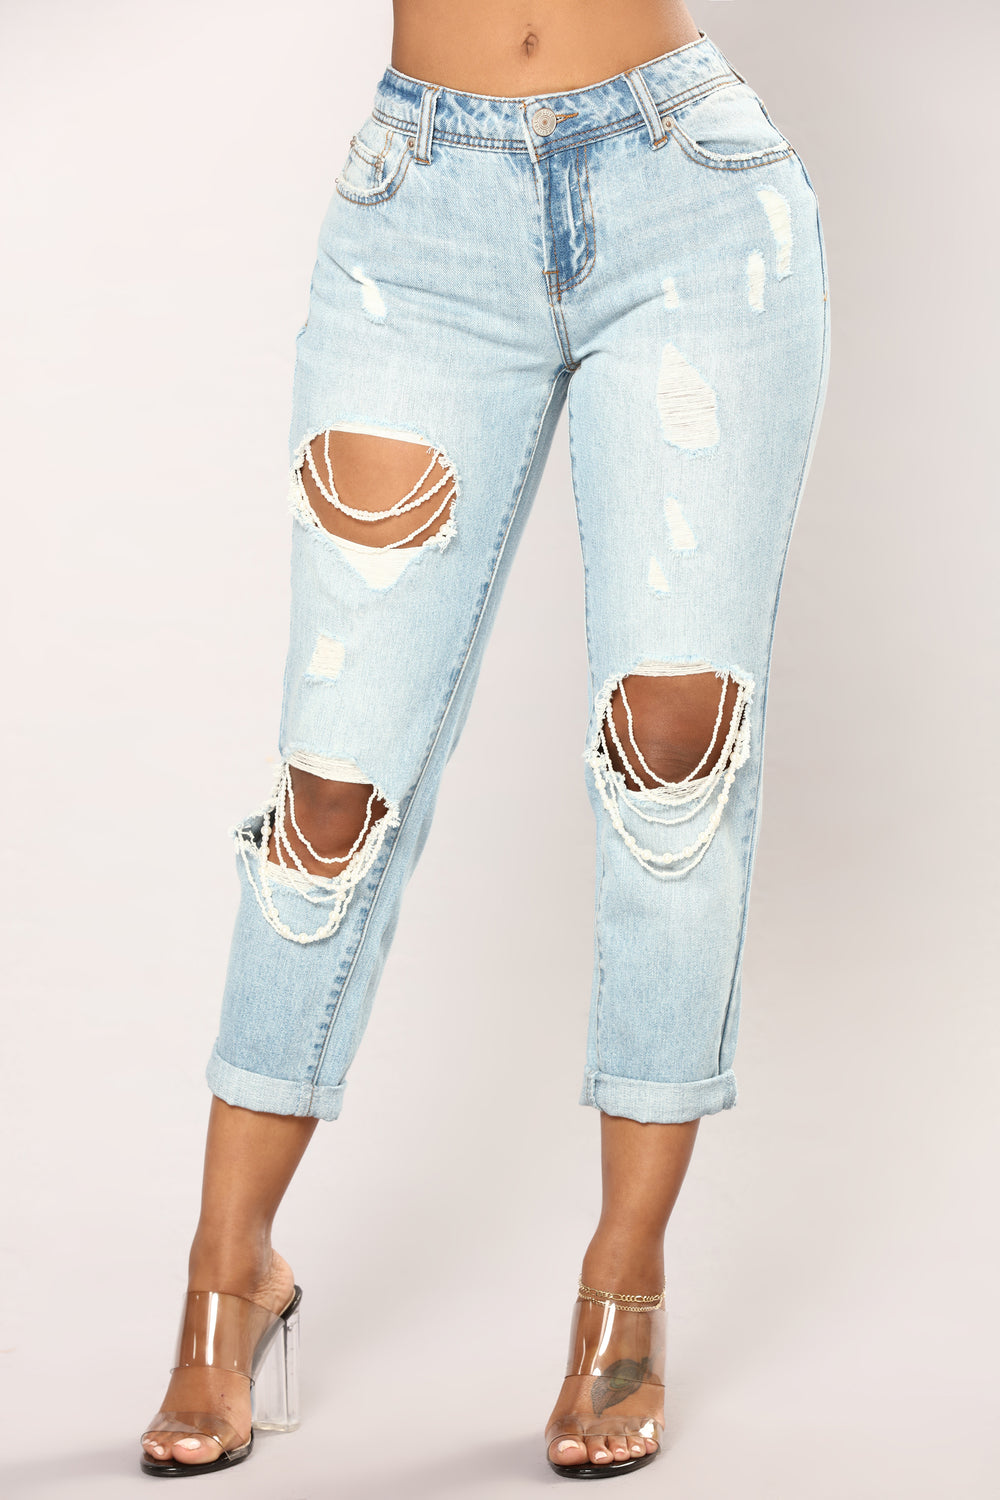 Who's Loving You Boyfriend Jeans - Light Blue Wash